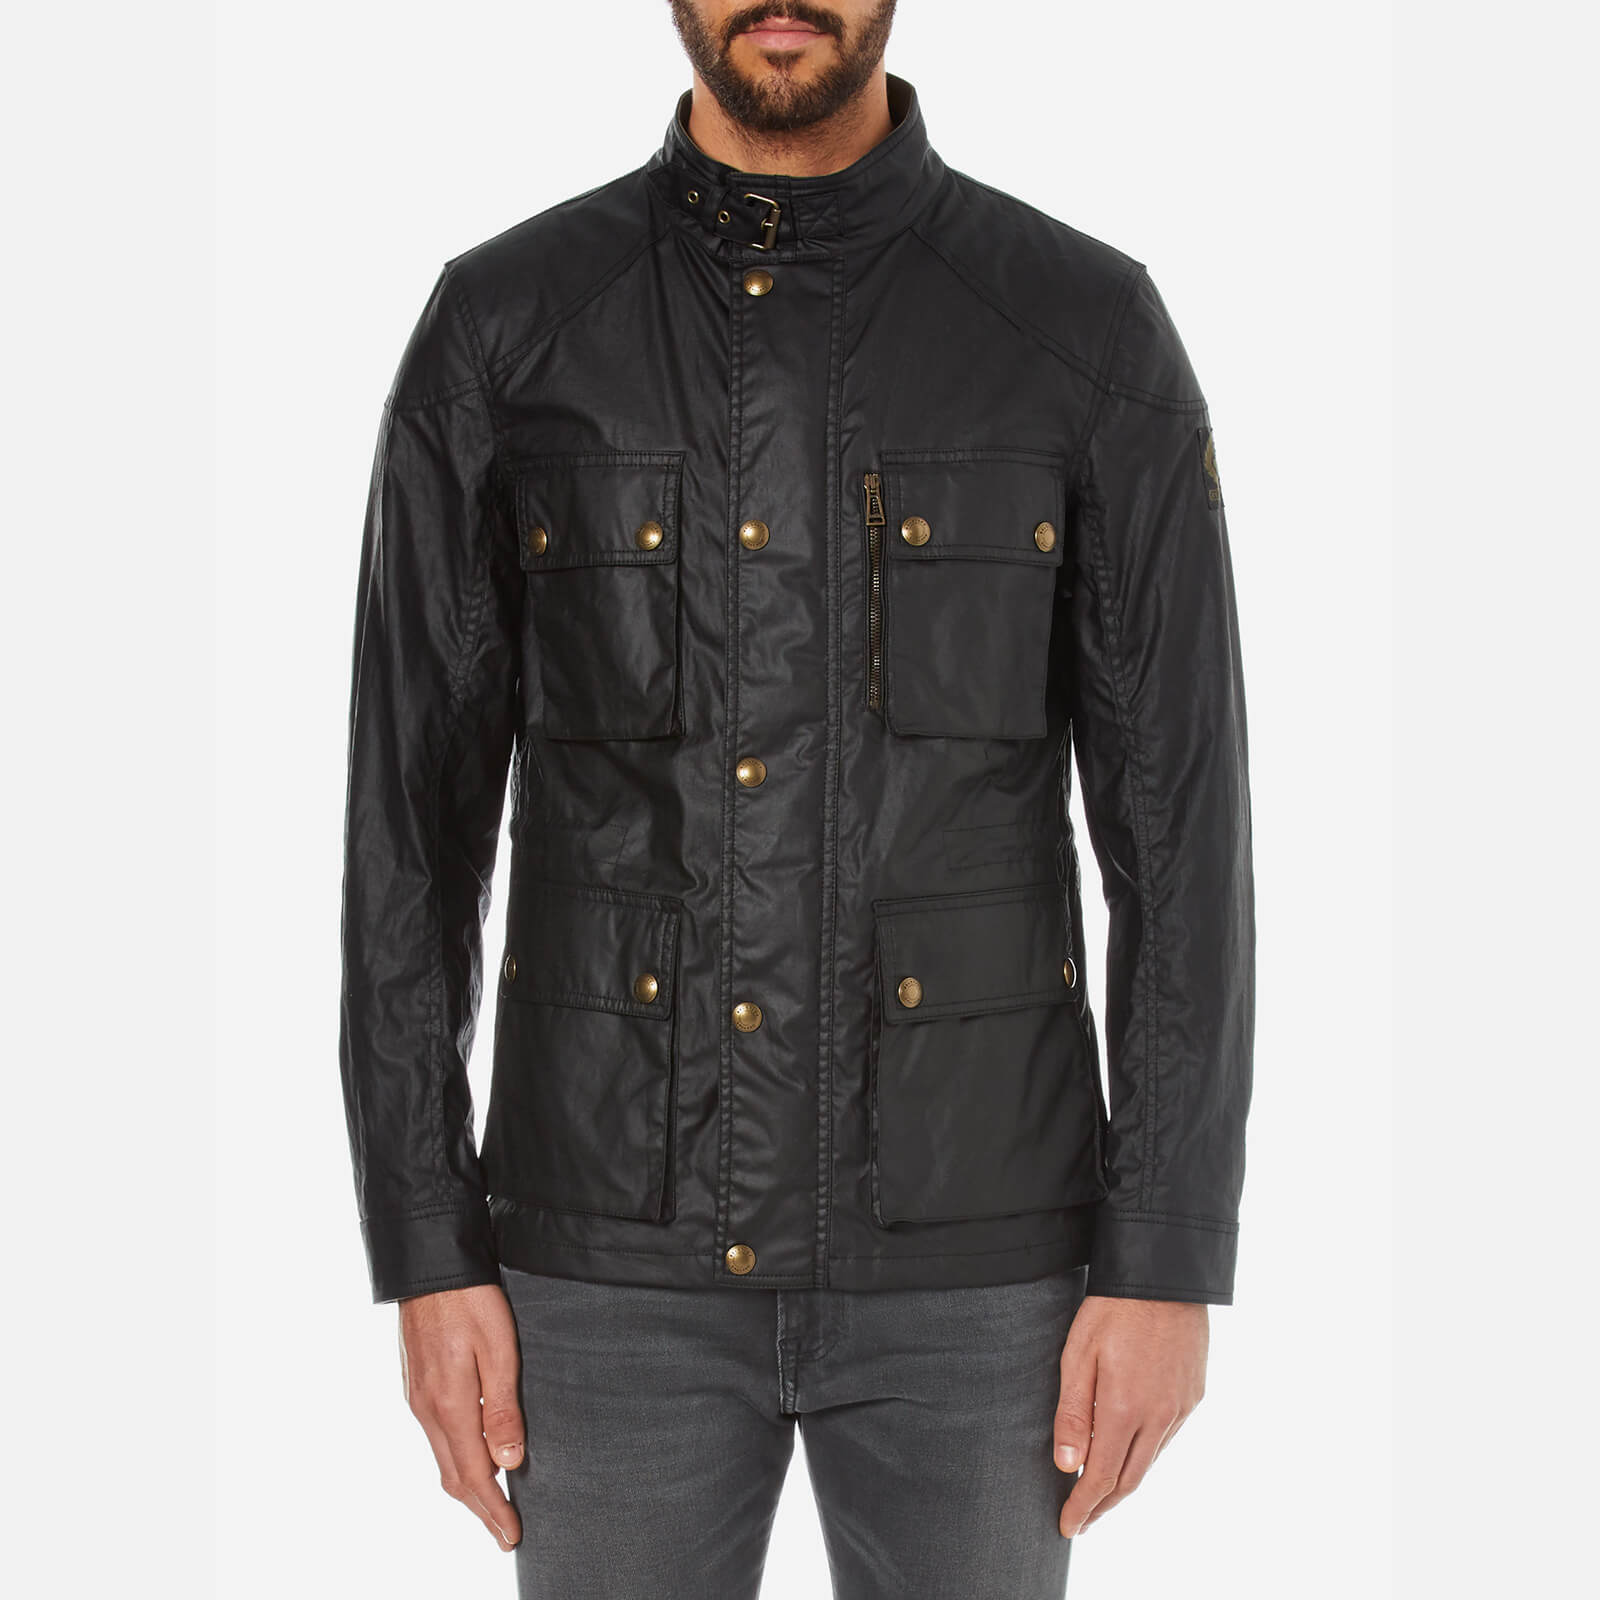 8dc22e651b Belstaff Men's Trialmaster Jacket - Black - Free UK Delivery over £50